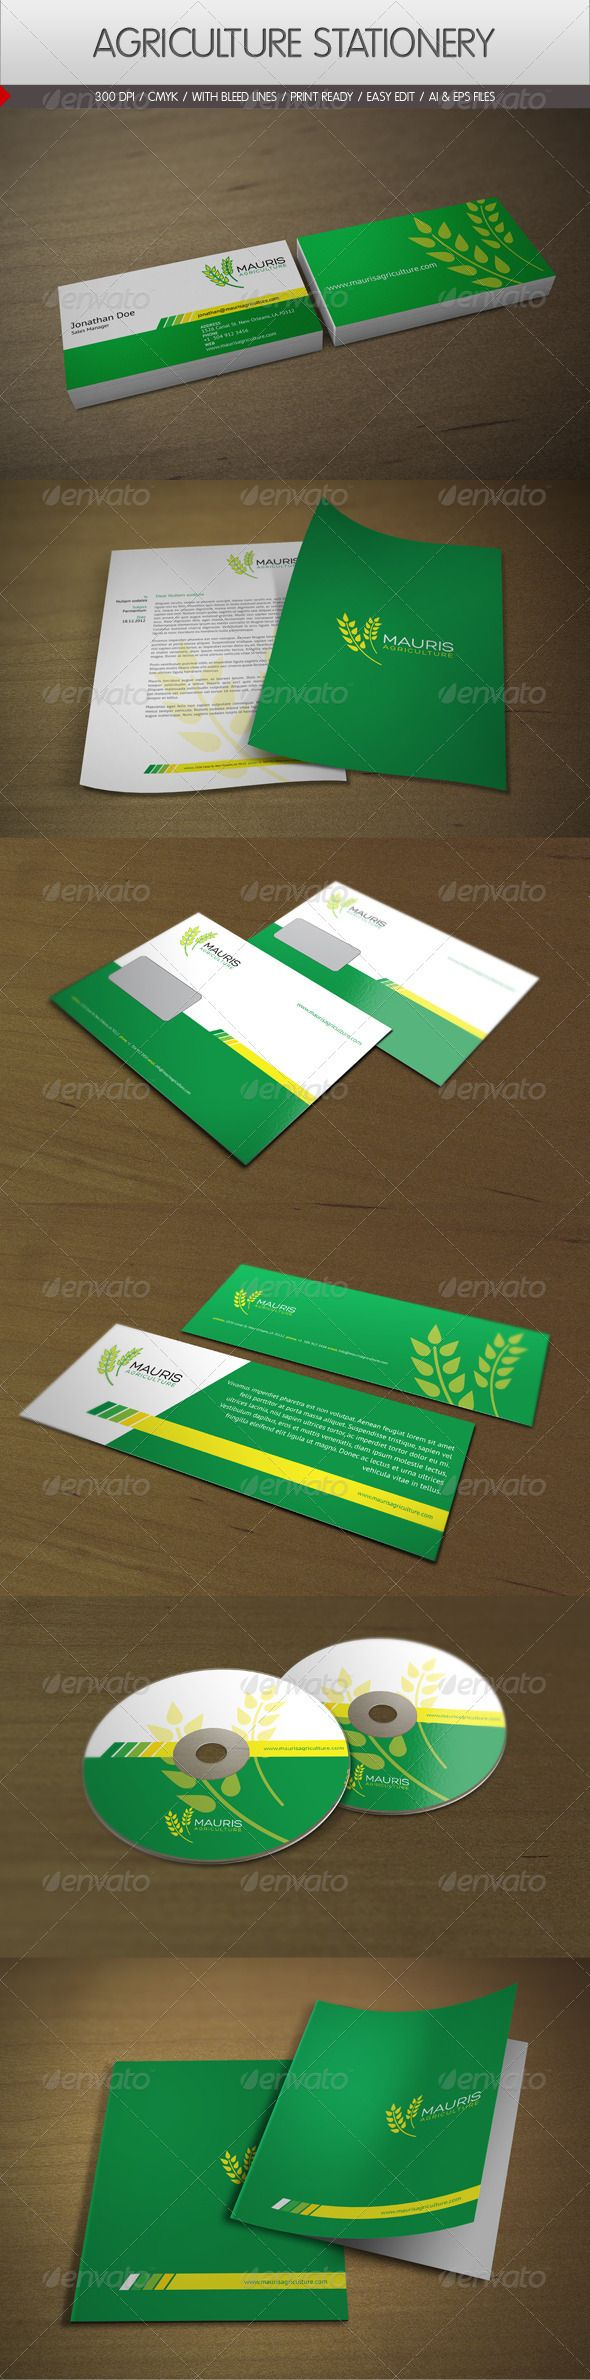 Agri cultures project logo duckdog design - Agriculture Corporate Identity